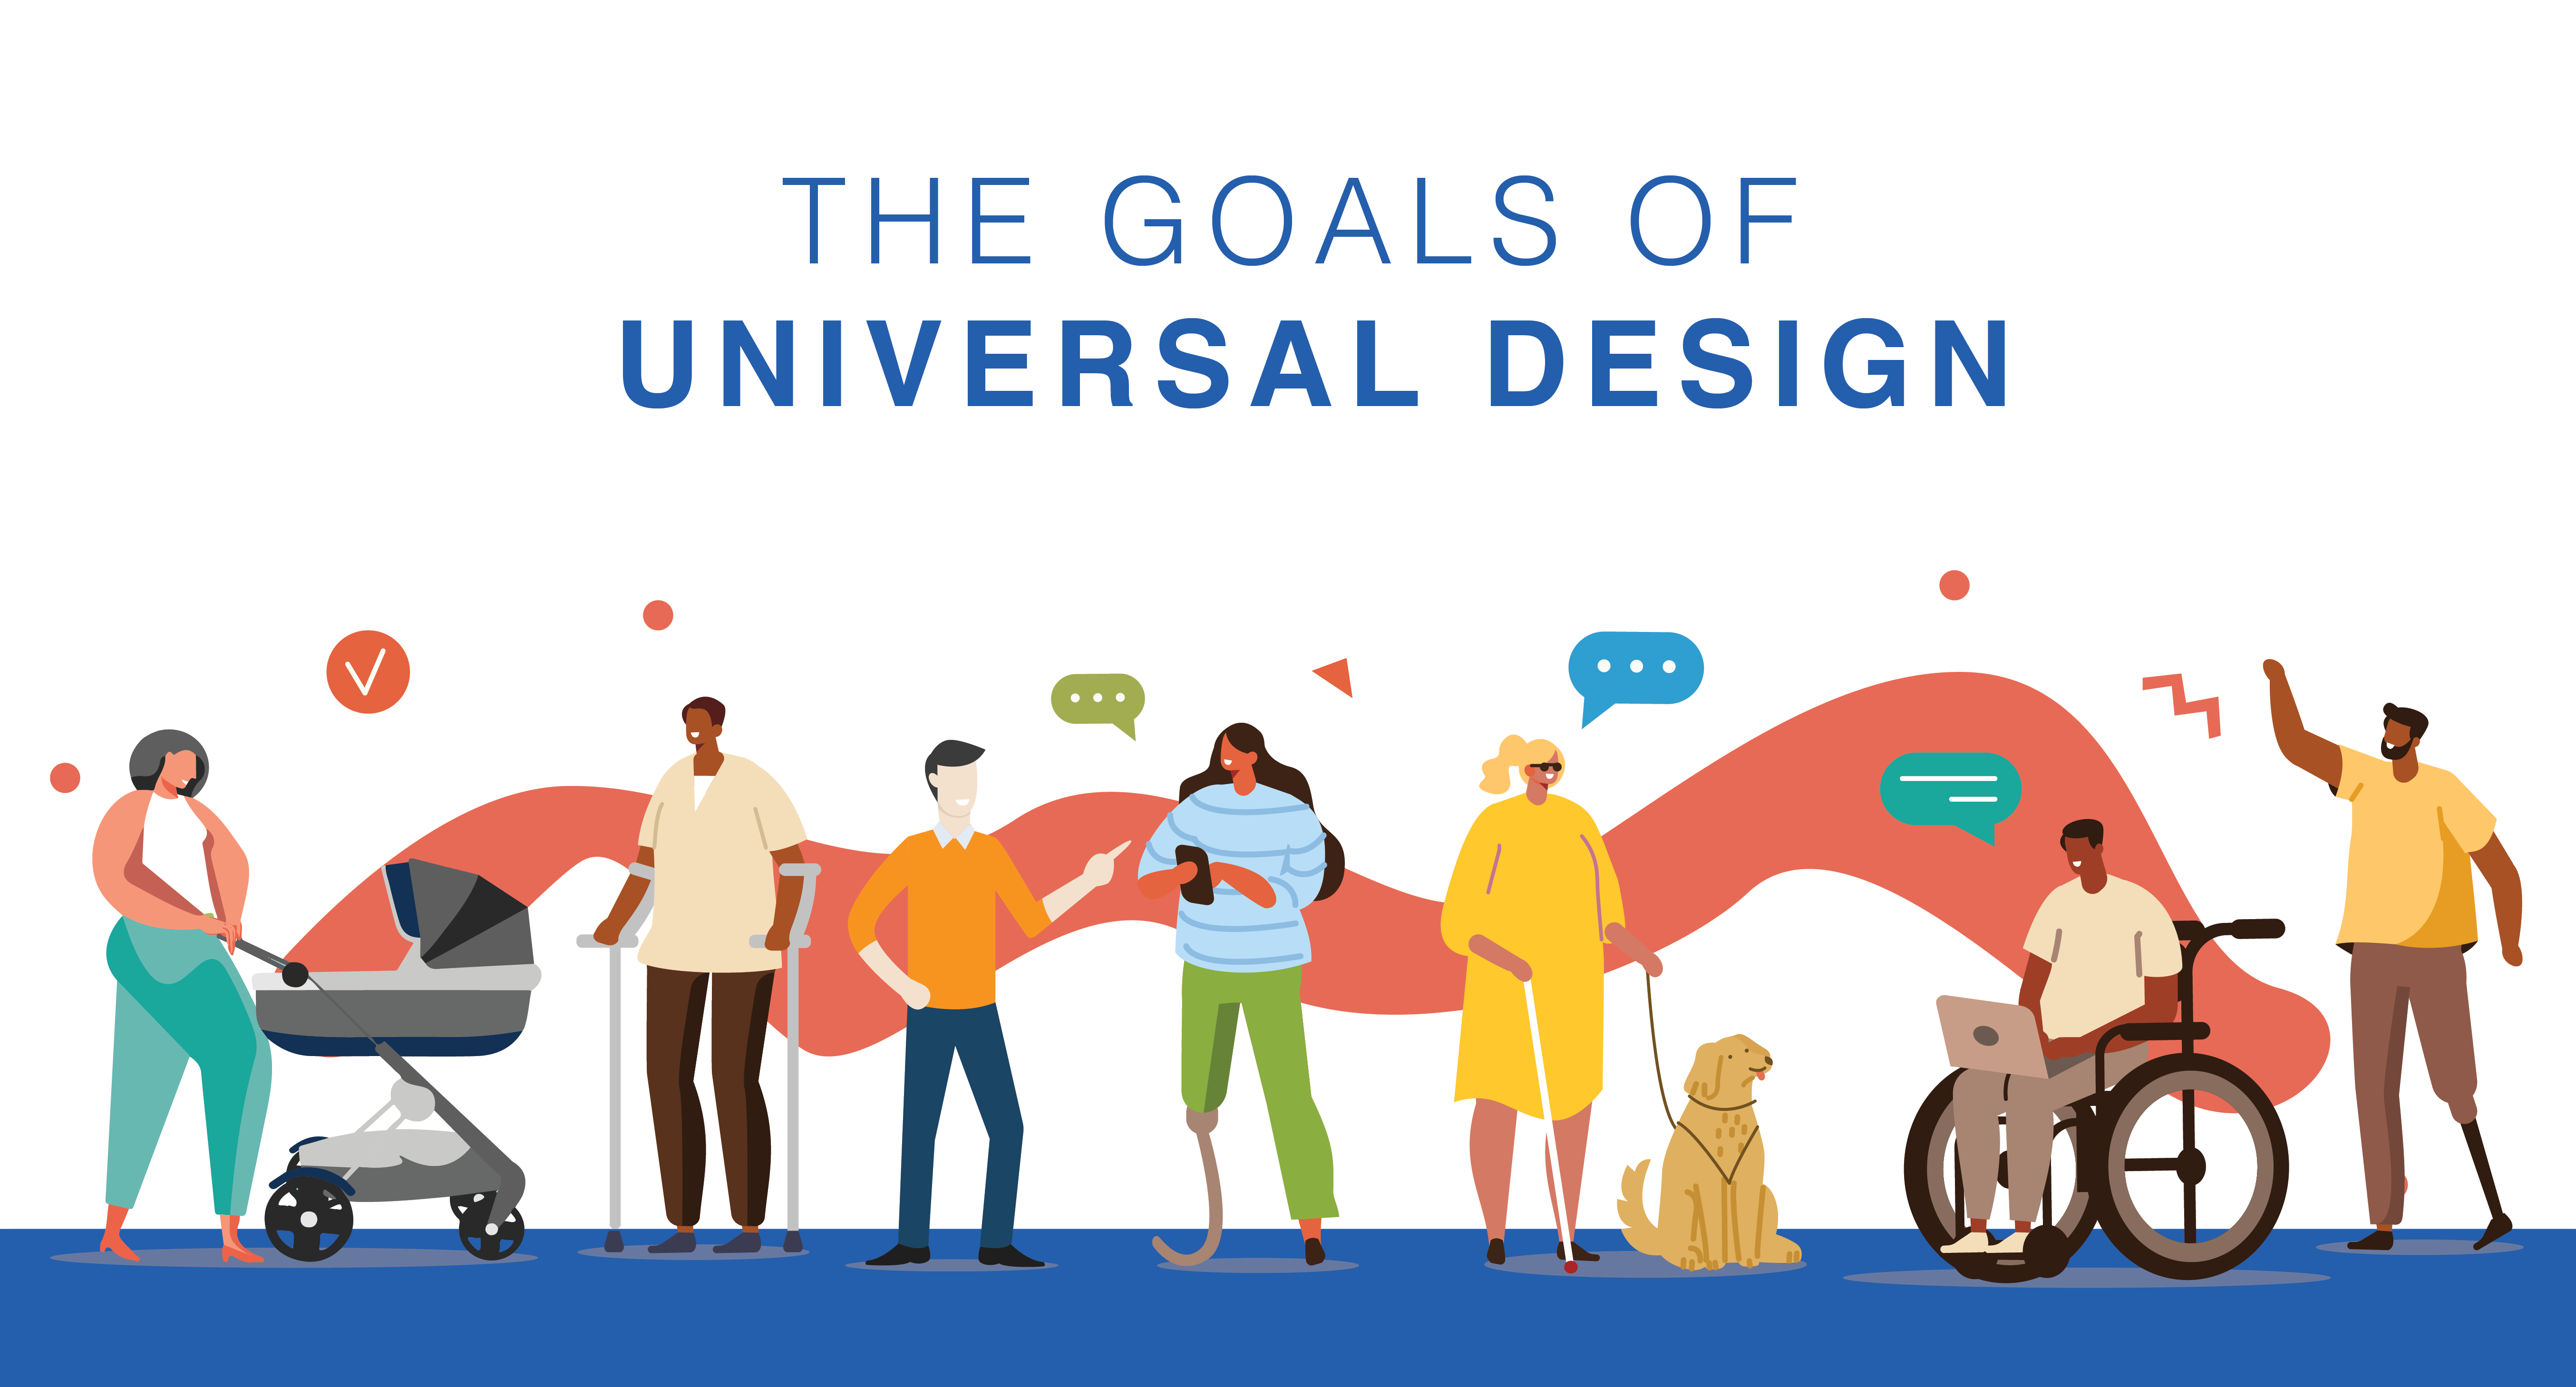 Goals of Universal Design - illustration of various types of people